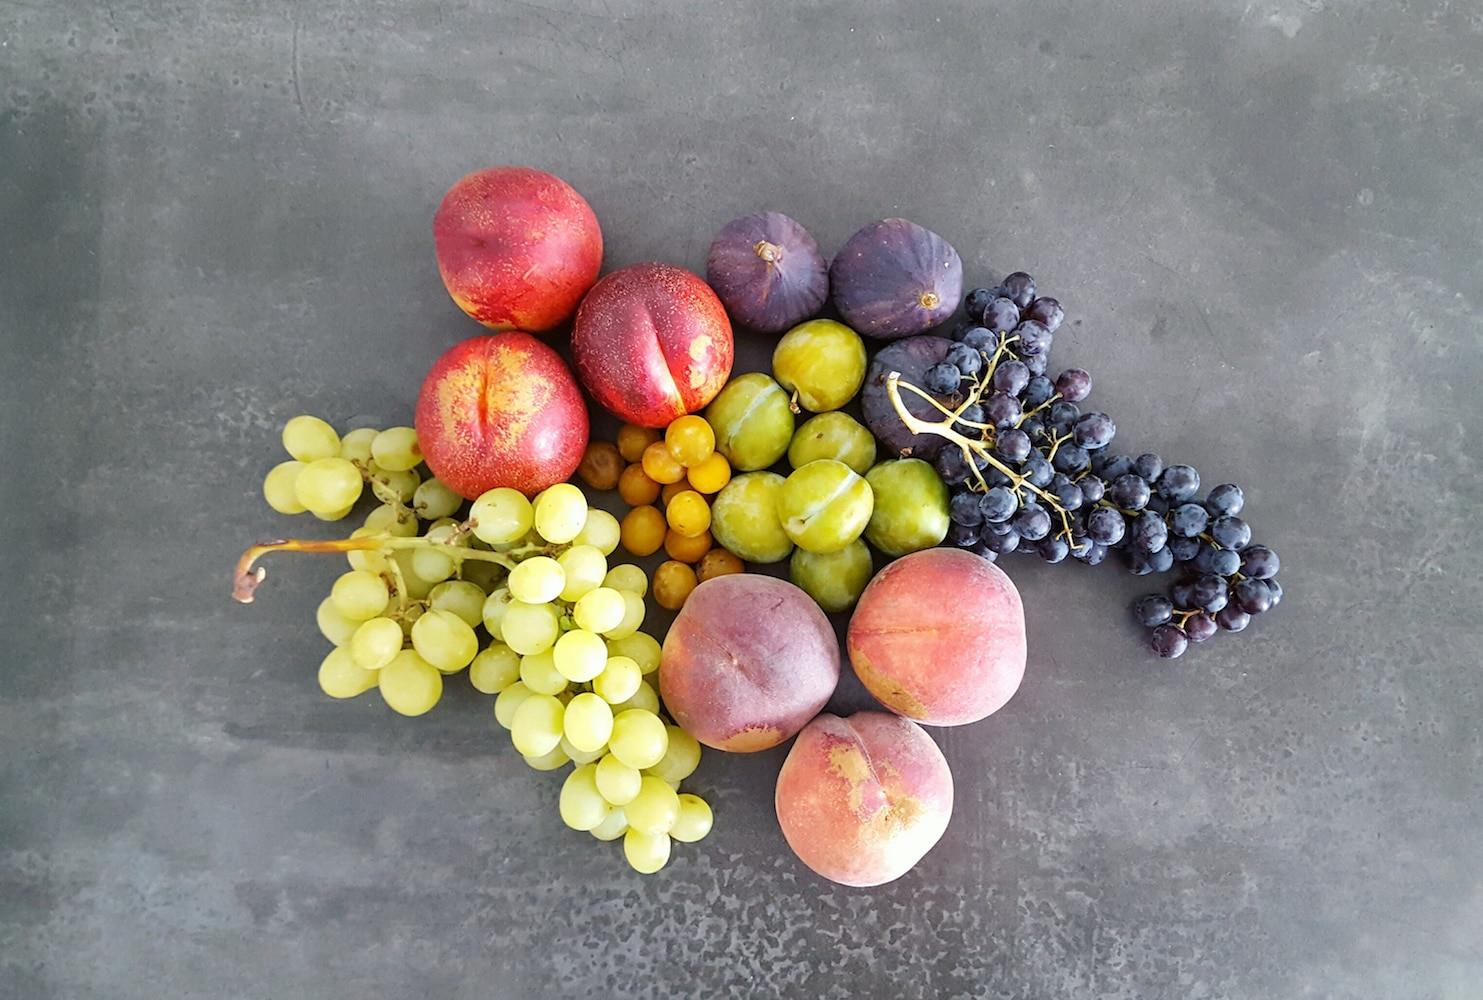 Fruits de septembre